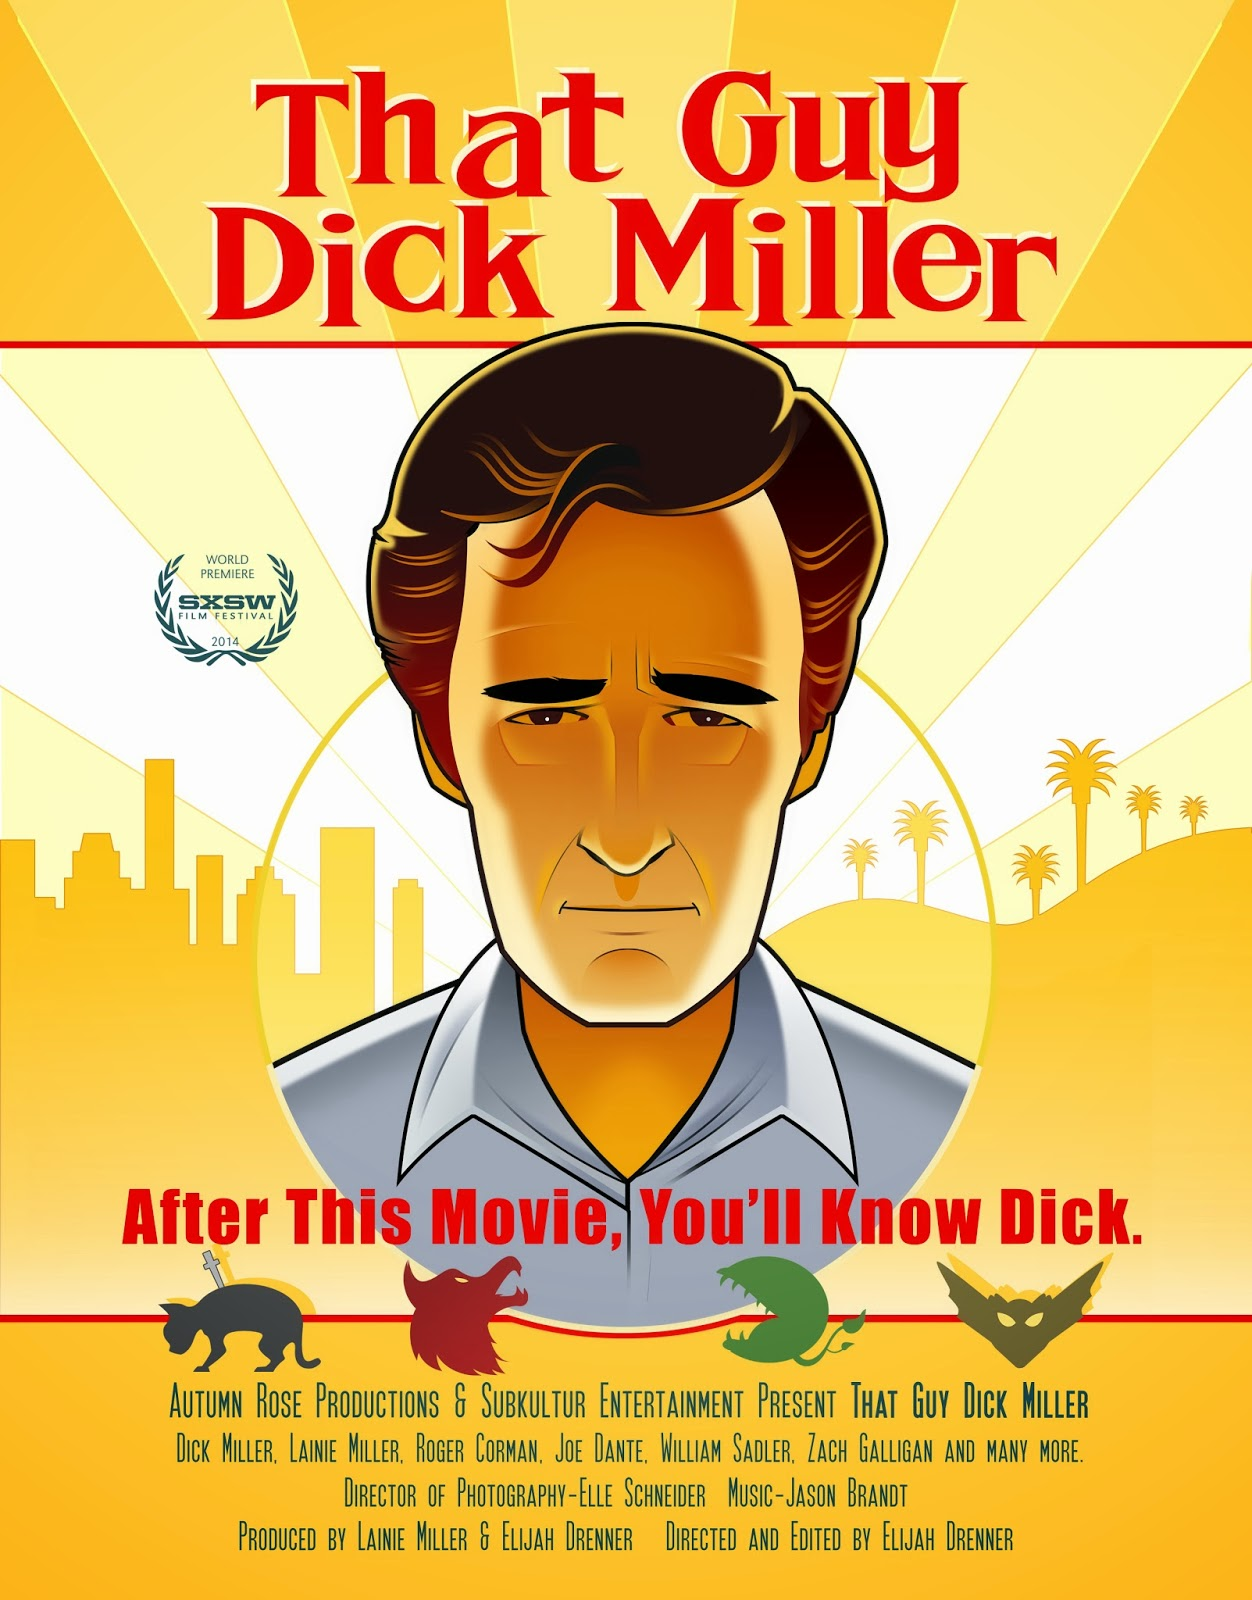 thatguydickmiller - American Cinematheque Presenting LA Premiere of That Guy Dick Miller on December 5th